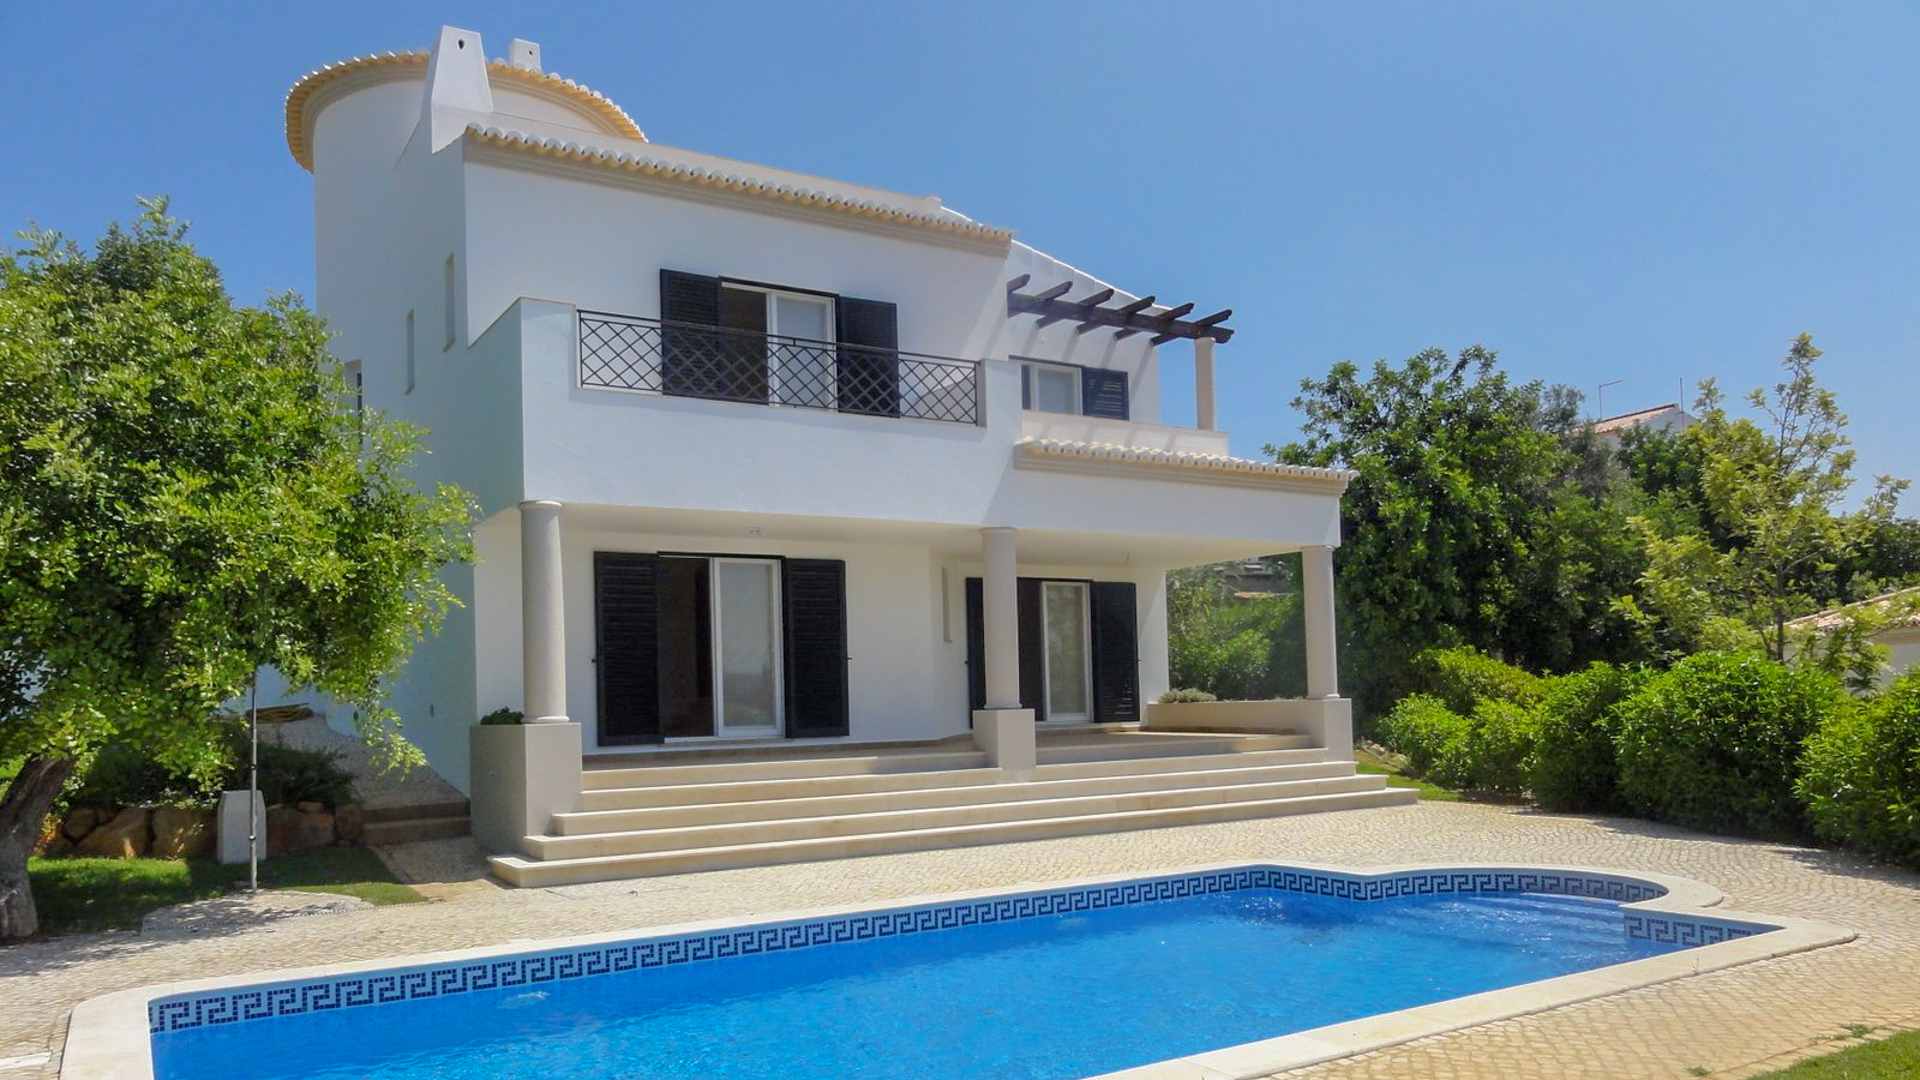 3 Bedroom Villa in prime location in Albufeira | S2327